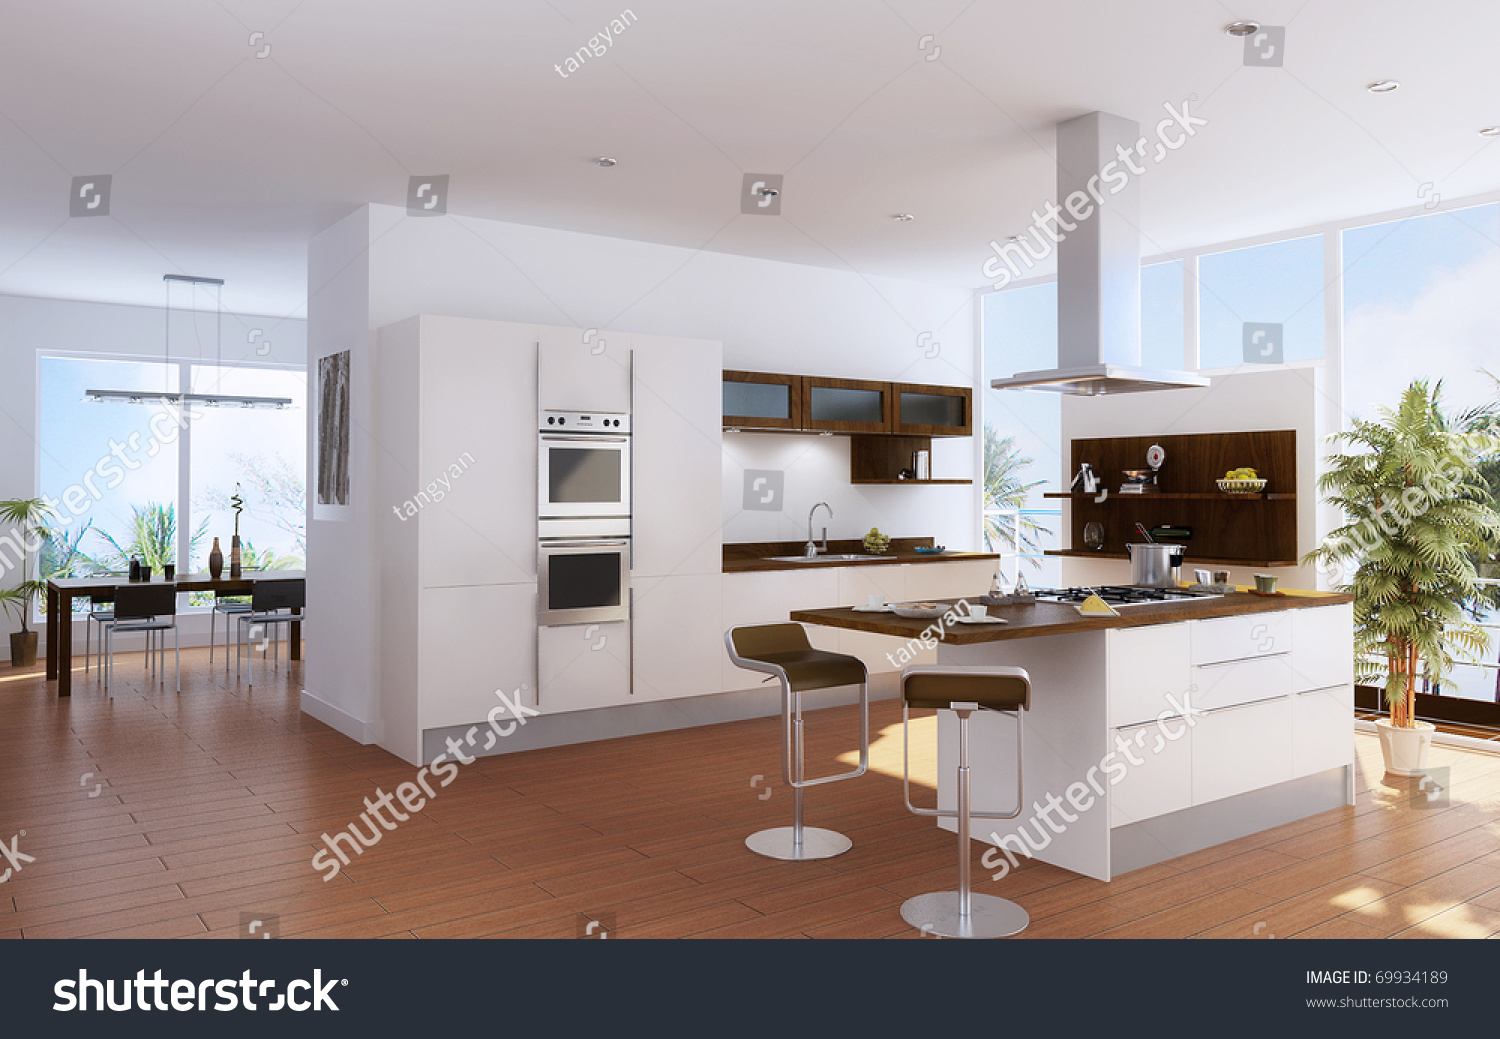 Kitchen interior design modern house for Modern kitchen interior